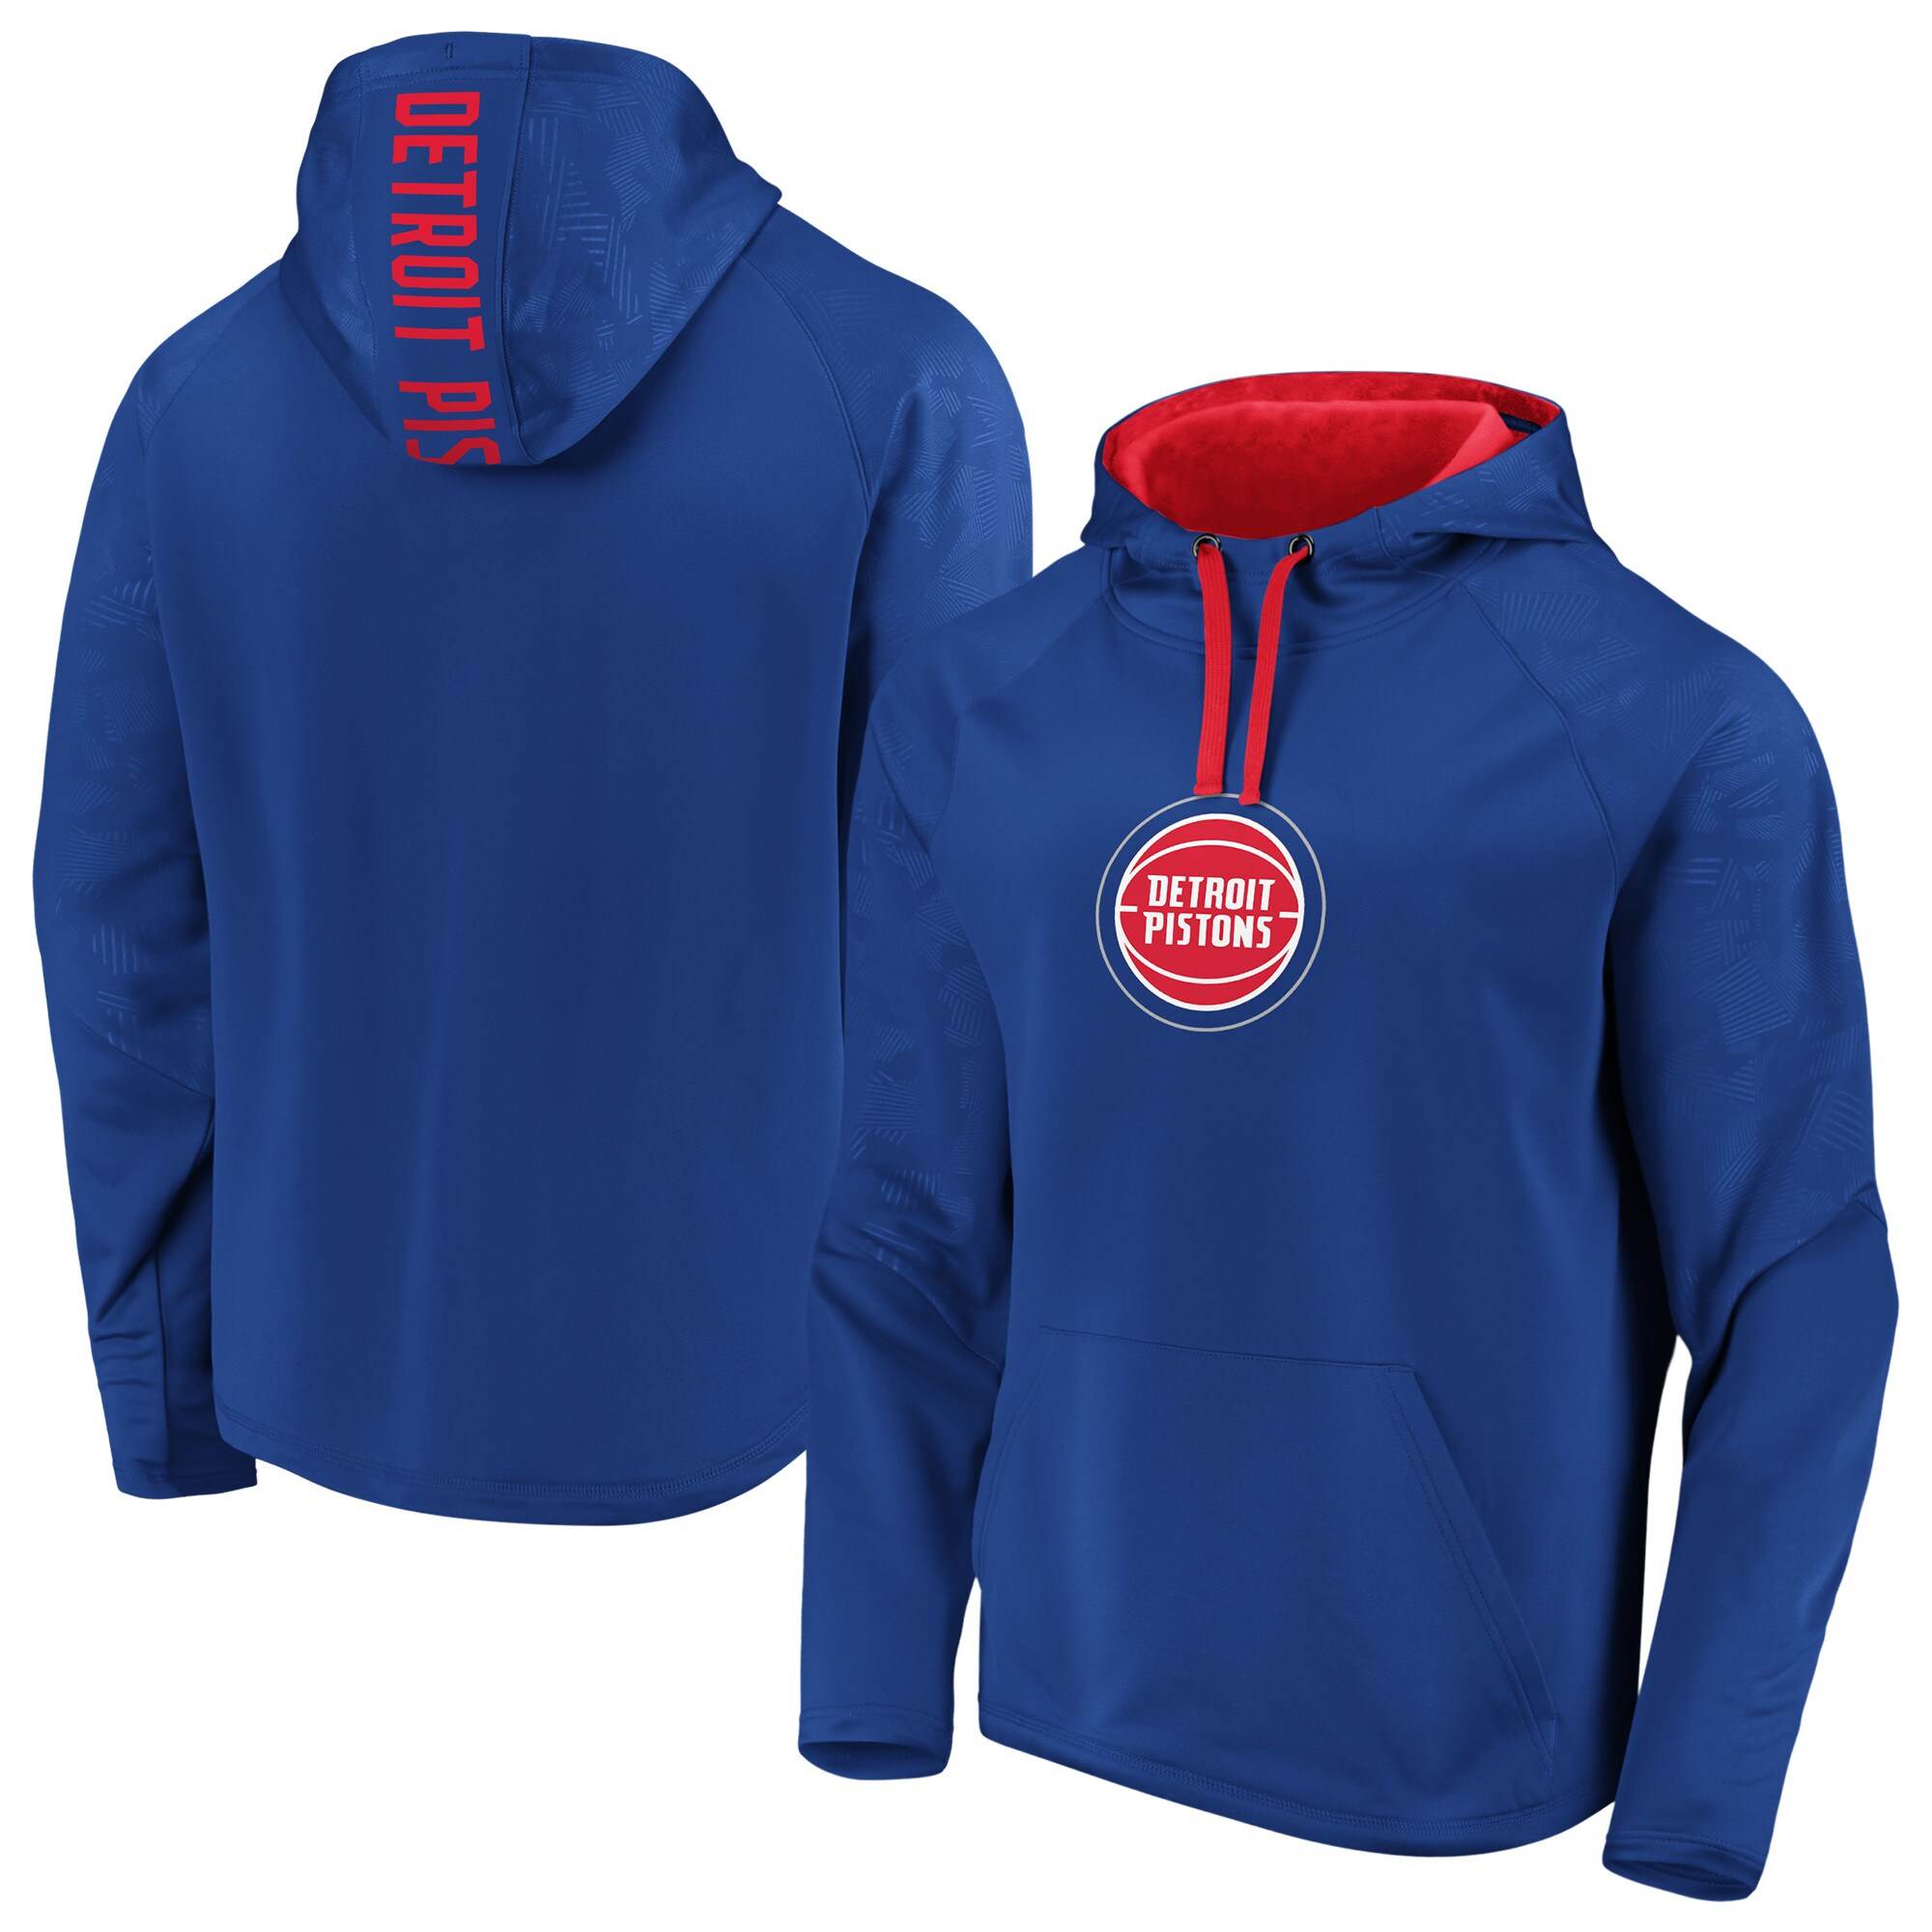 Detroit Pistons Fanatics Branded Iconic Defender Performance Primary Logo Pullover Hoodie - Blue/Red